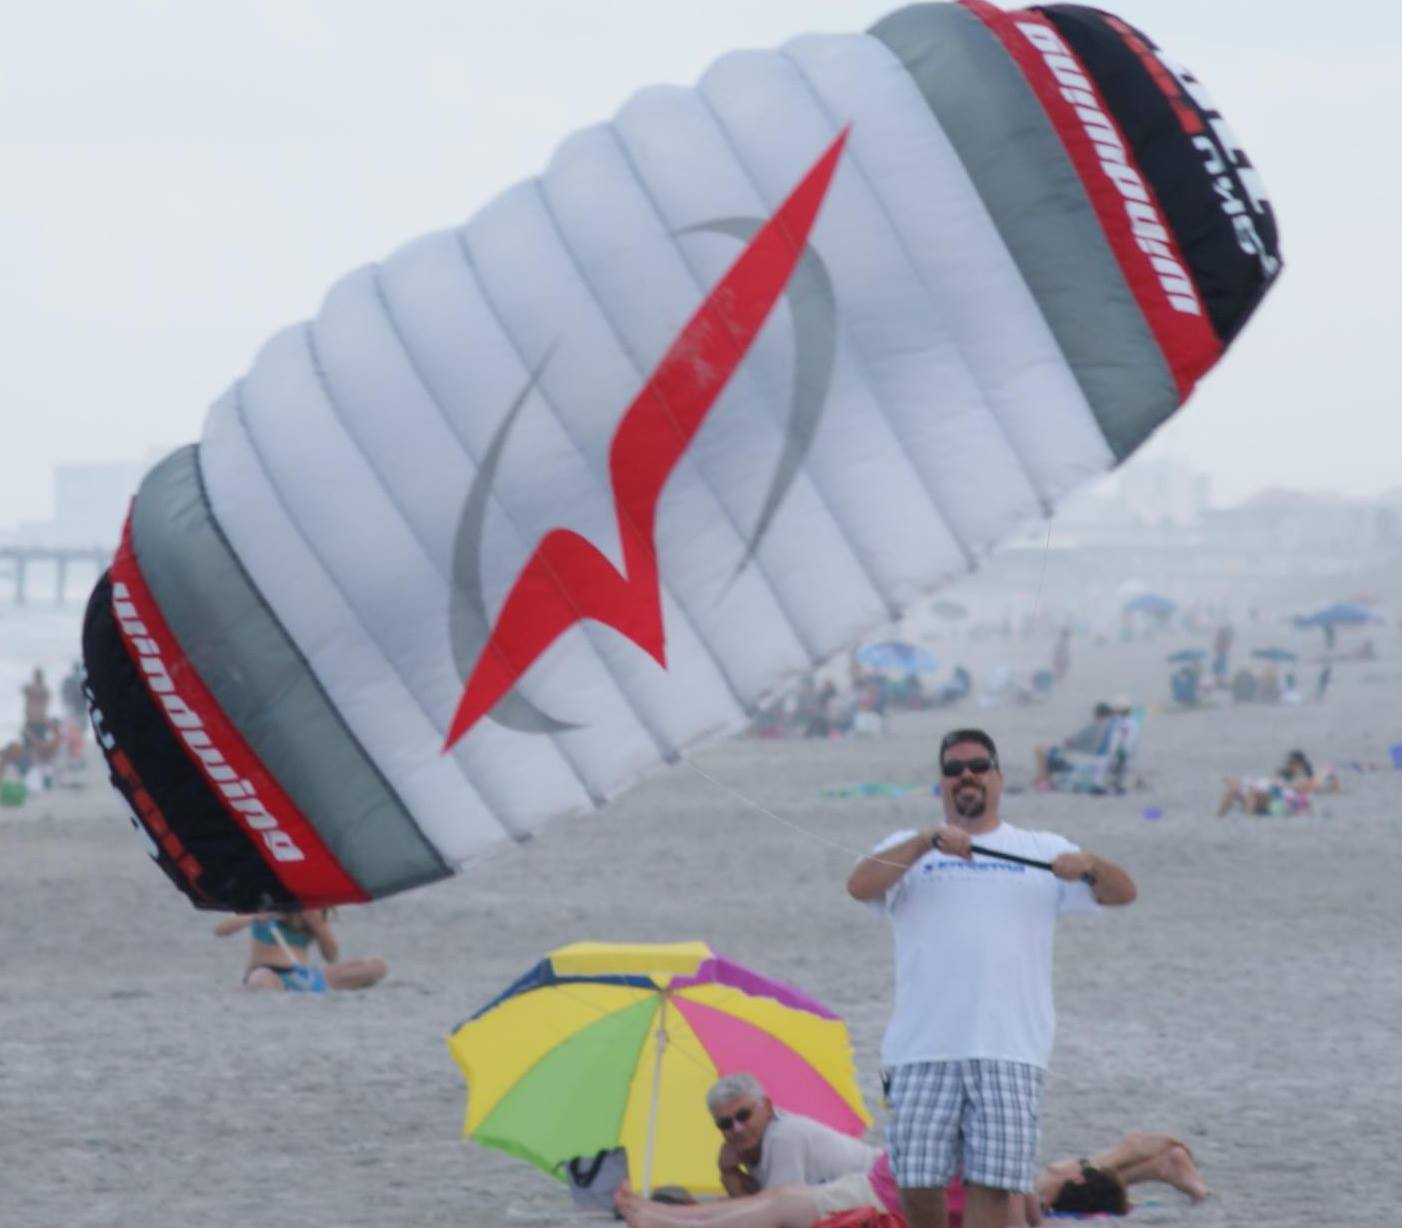 Kite flying on Cape Canaveral Beach Florida